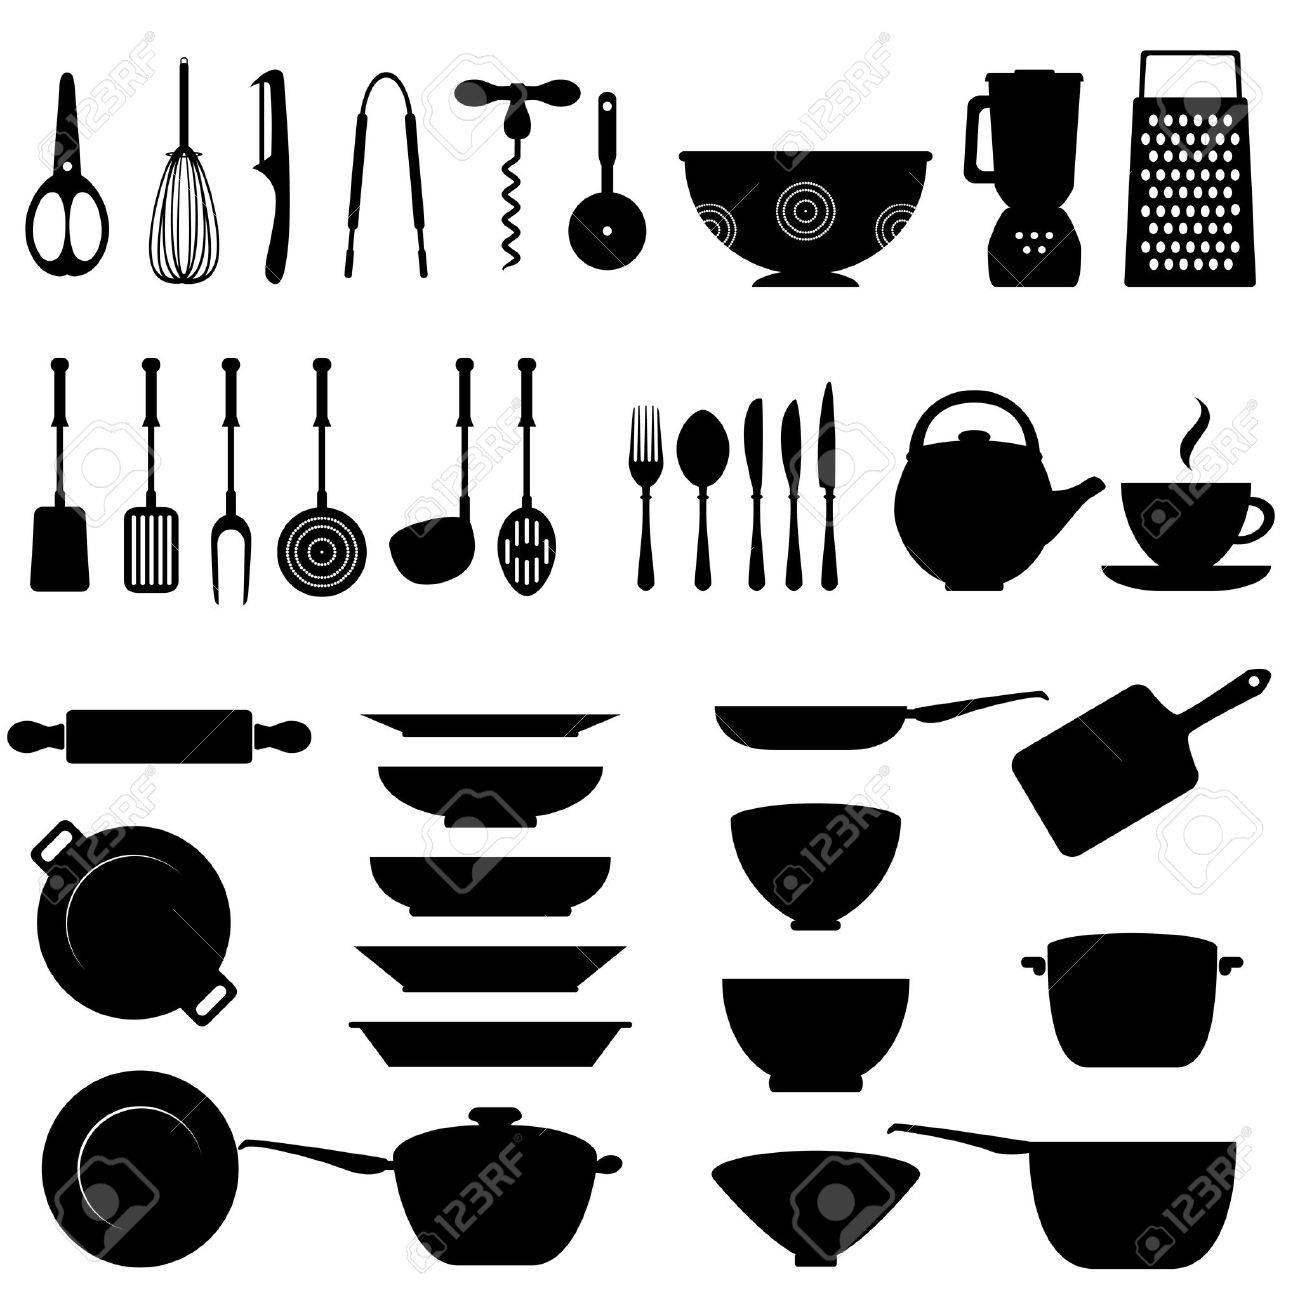 Kitchen utensils and tool icon set Stock Vector - 14523324